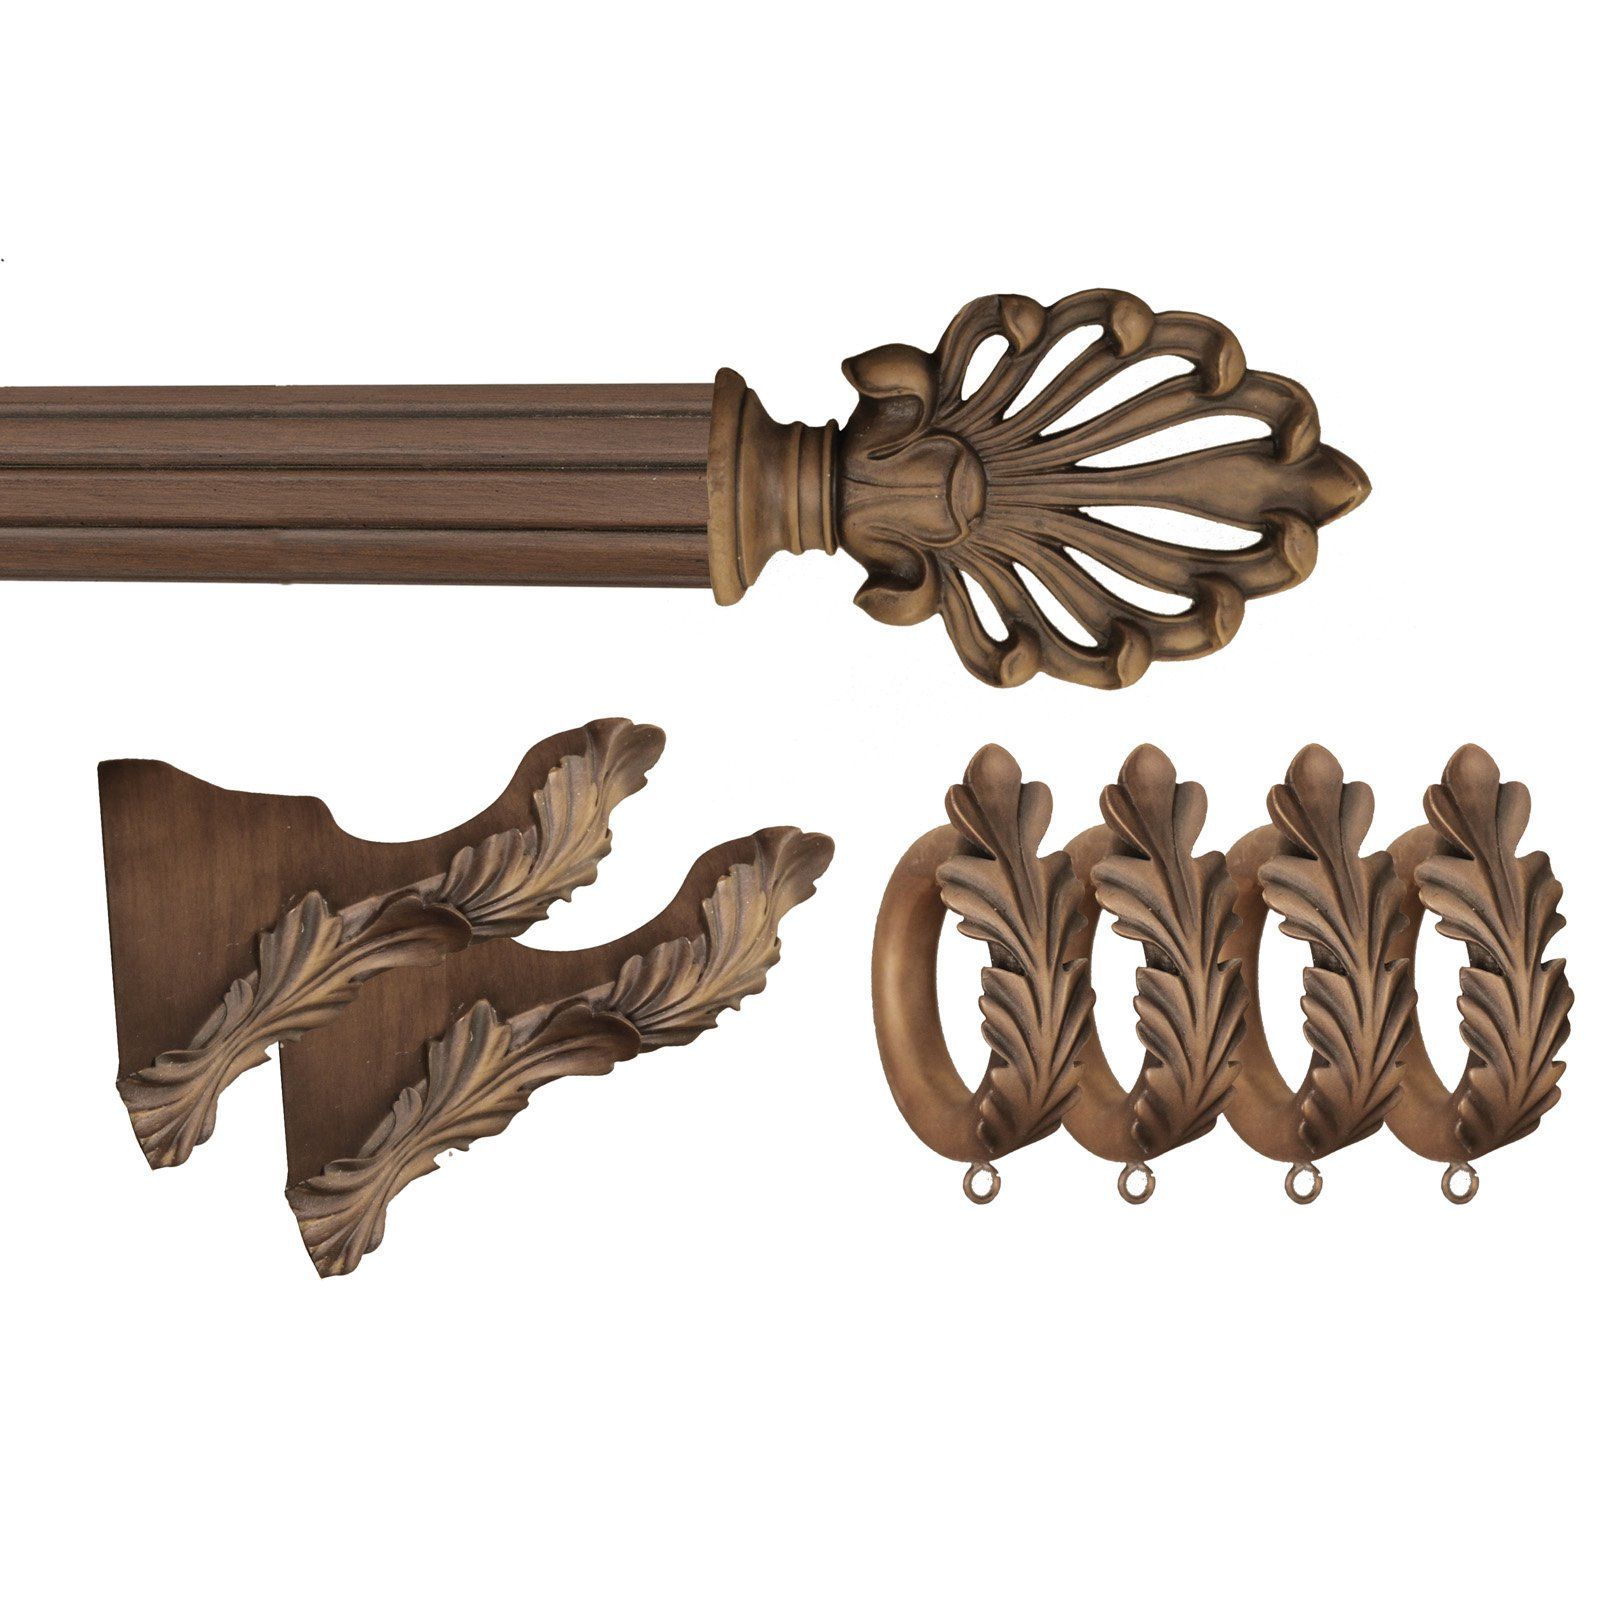 Menagerie Ready 2 In Faux Wood Ludwig Drapery Hardware 13 Pc Set 6 Ft Pole Drapery Hardware Curtain Rod Hardware Hardware